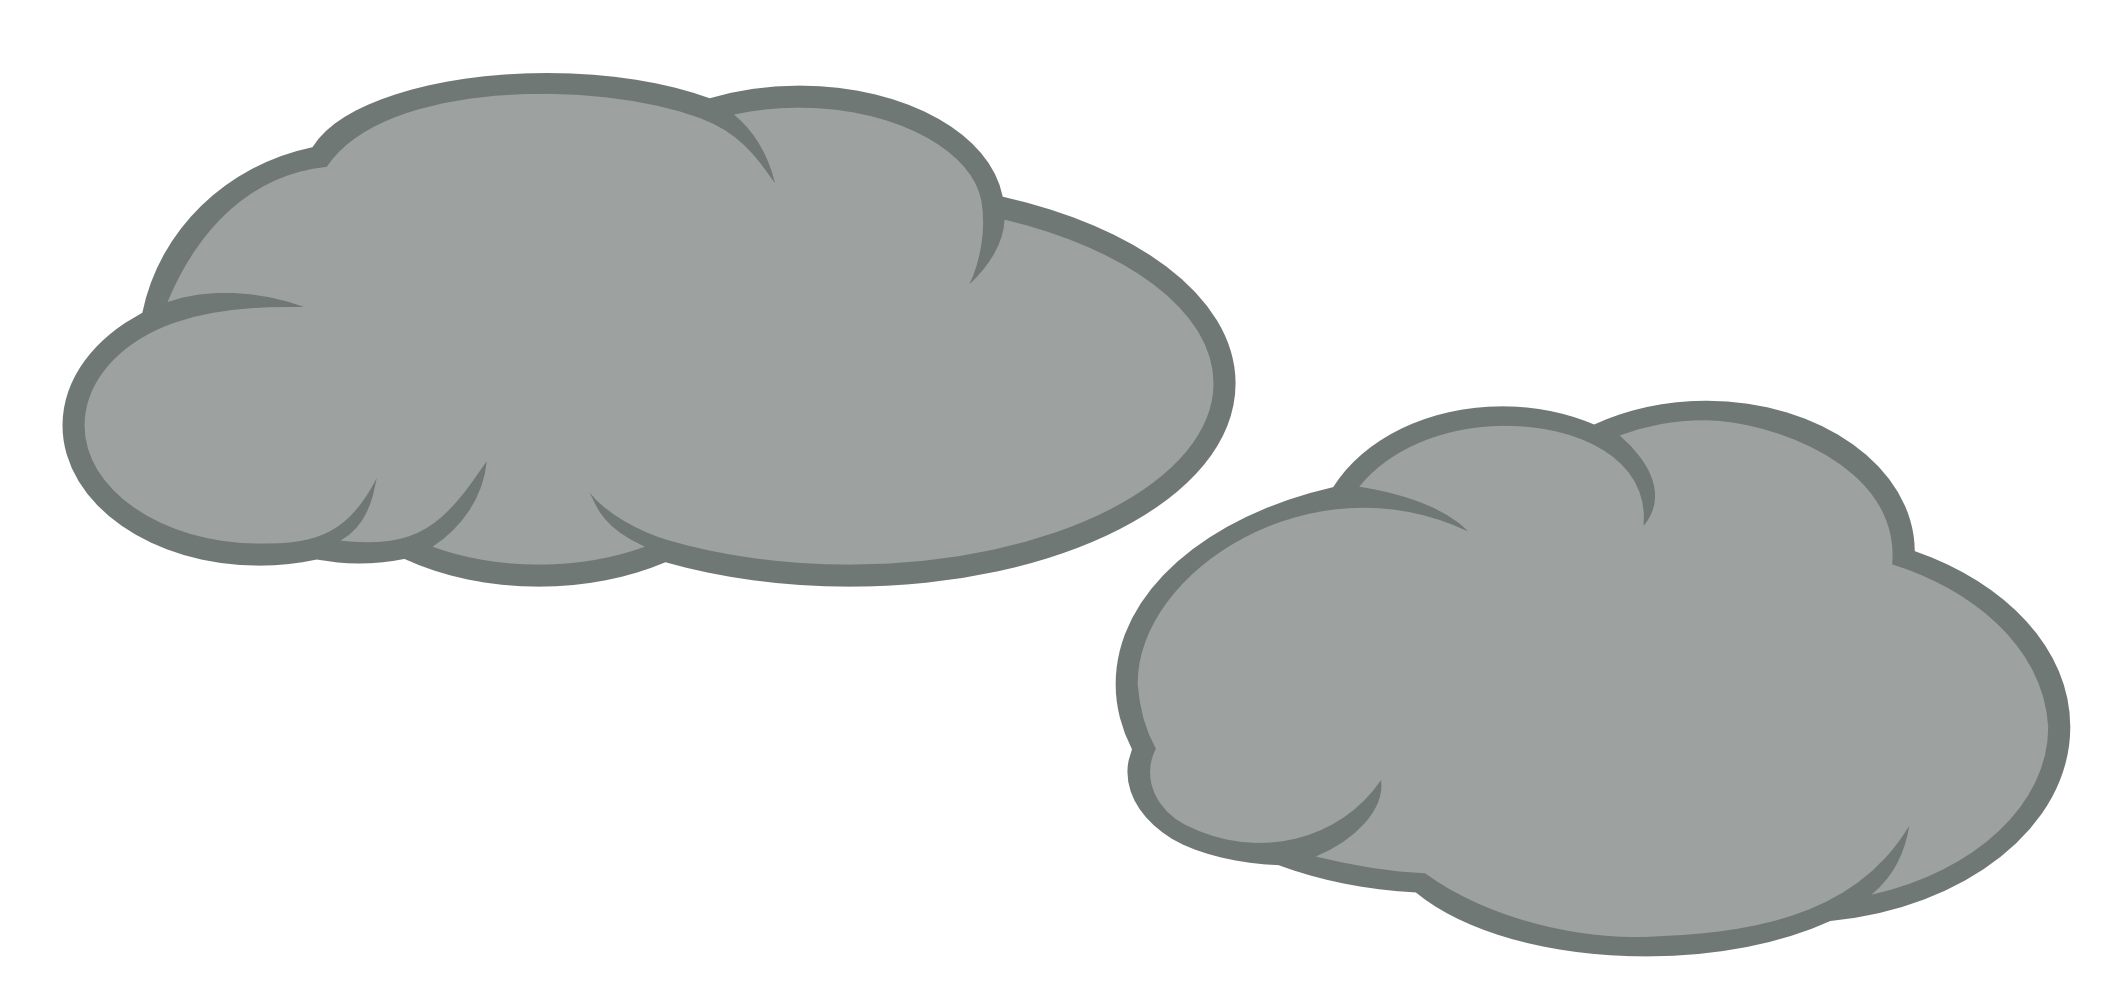 Thunderbolt drawing cloud. Best hd two clouds